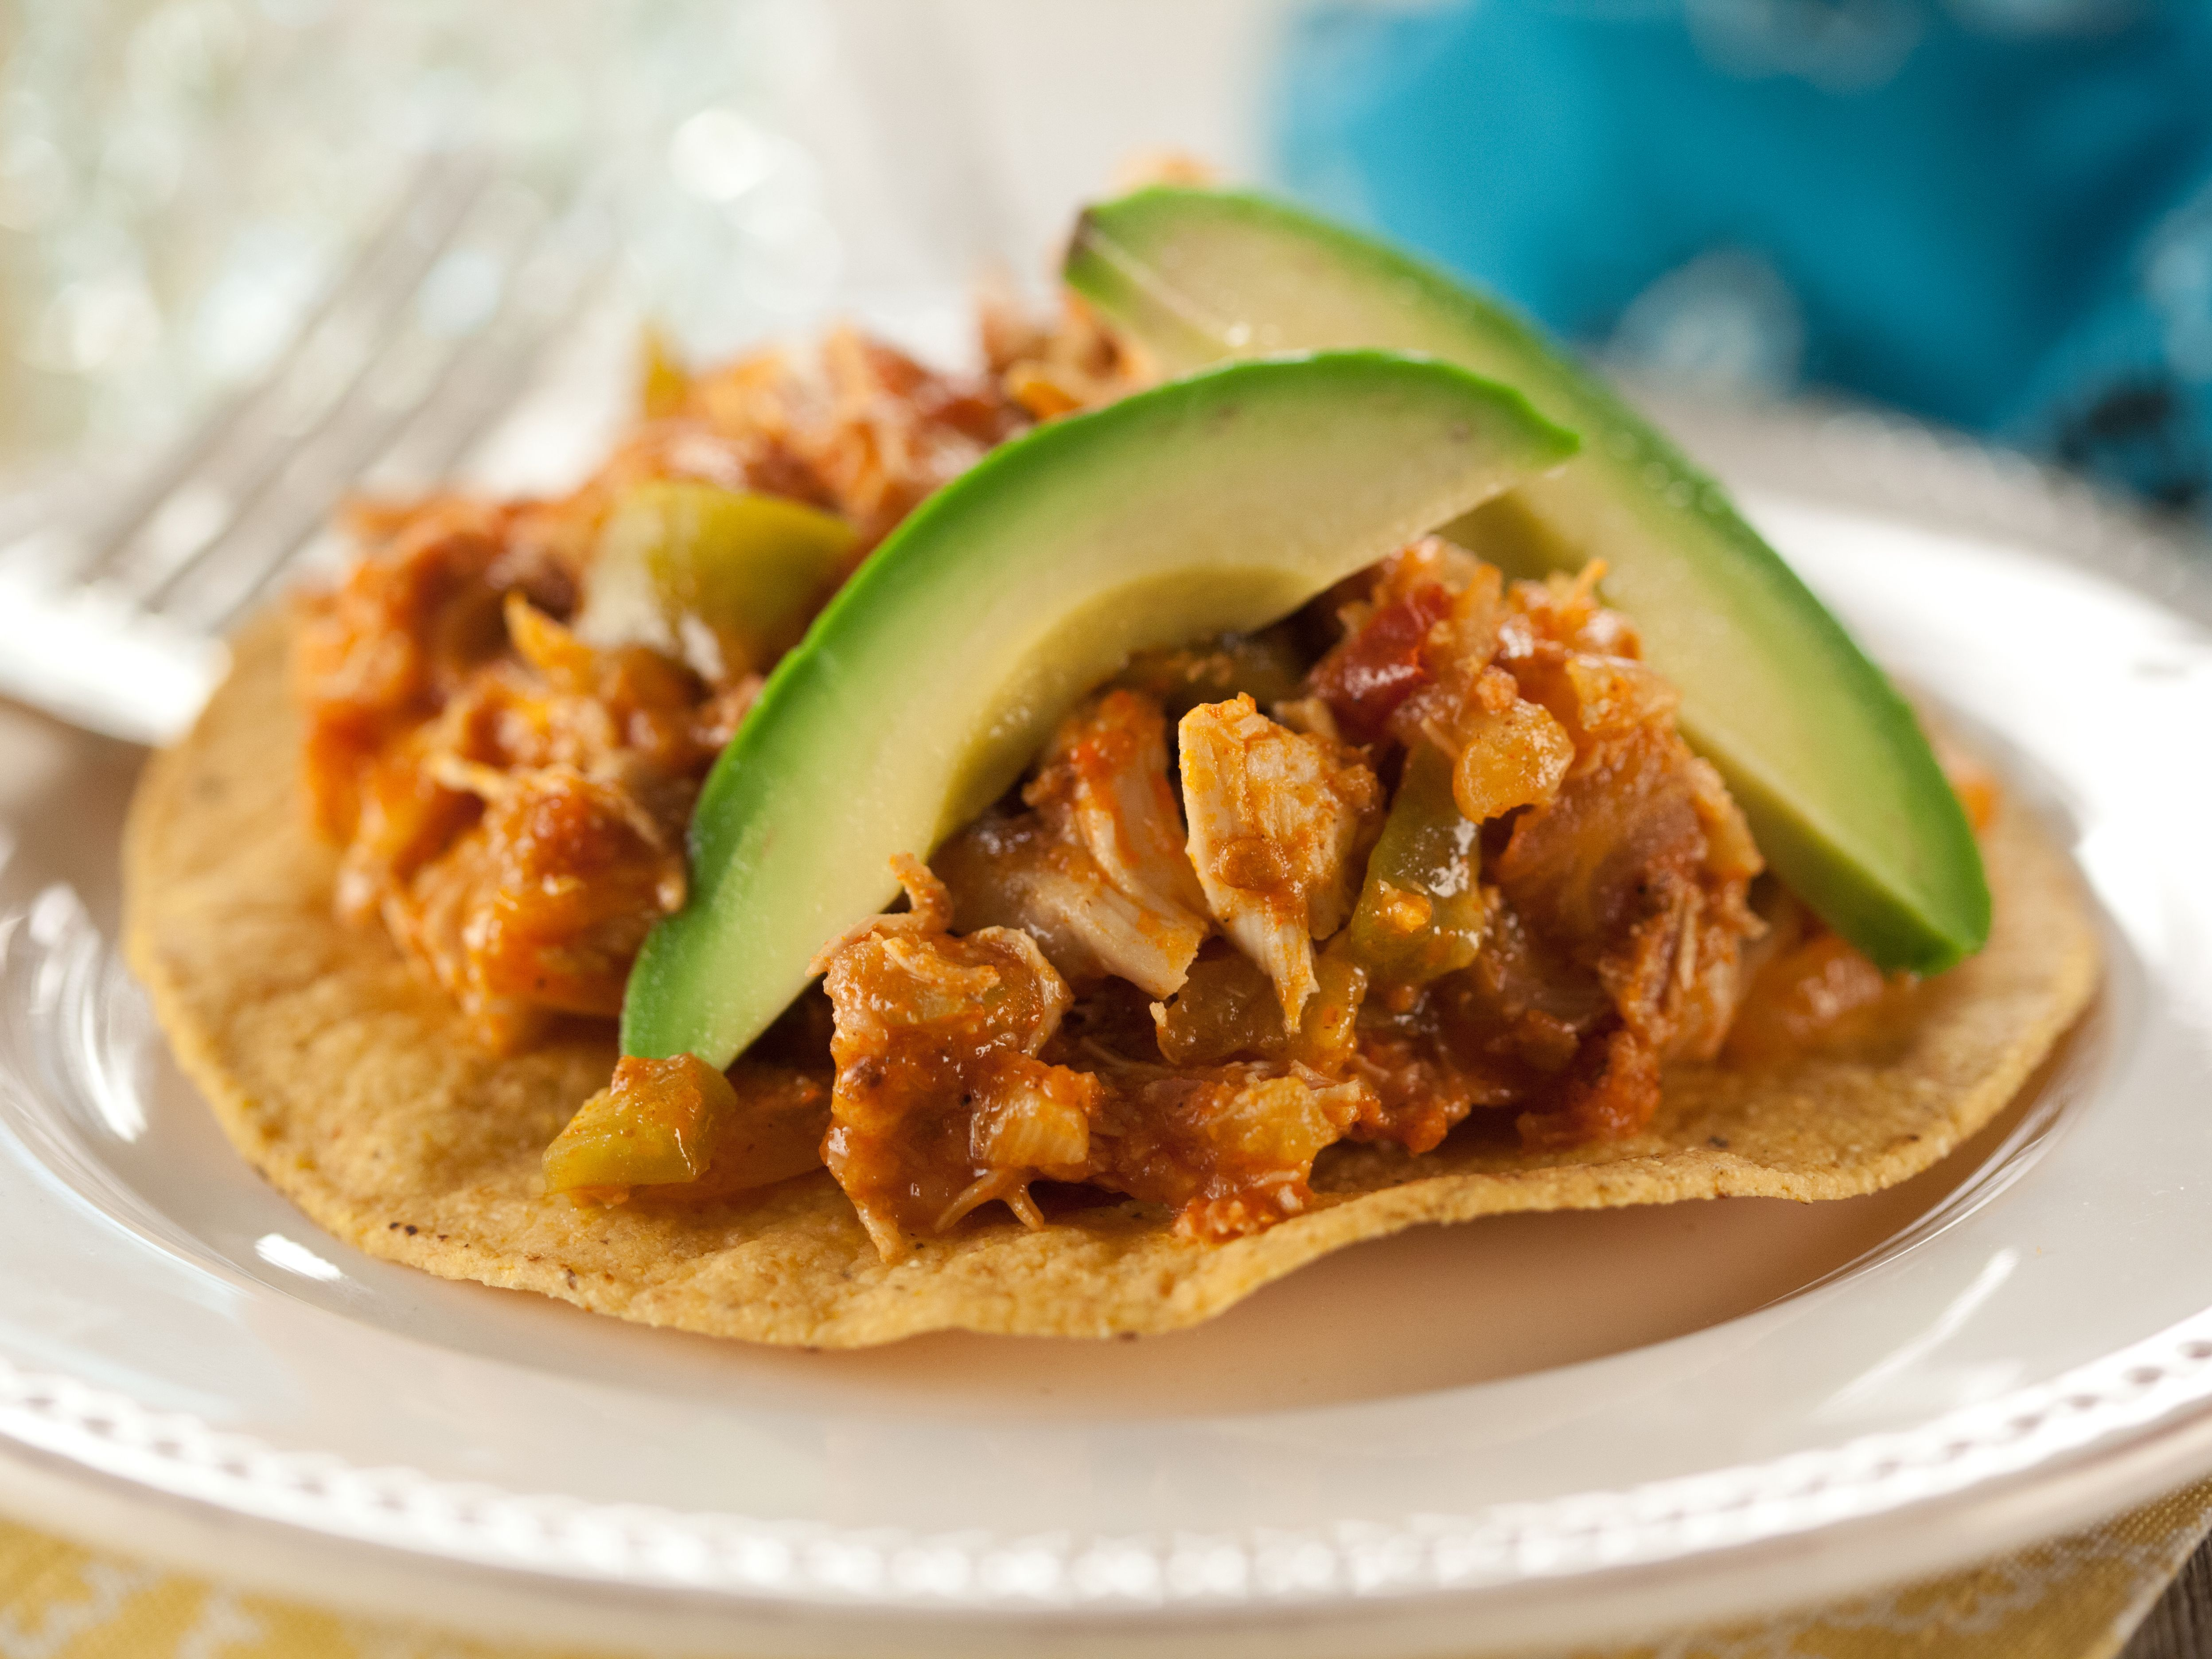 Shredded Spicy Chicken Tostadas Tinga Receta Tostadas De